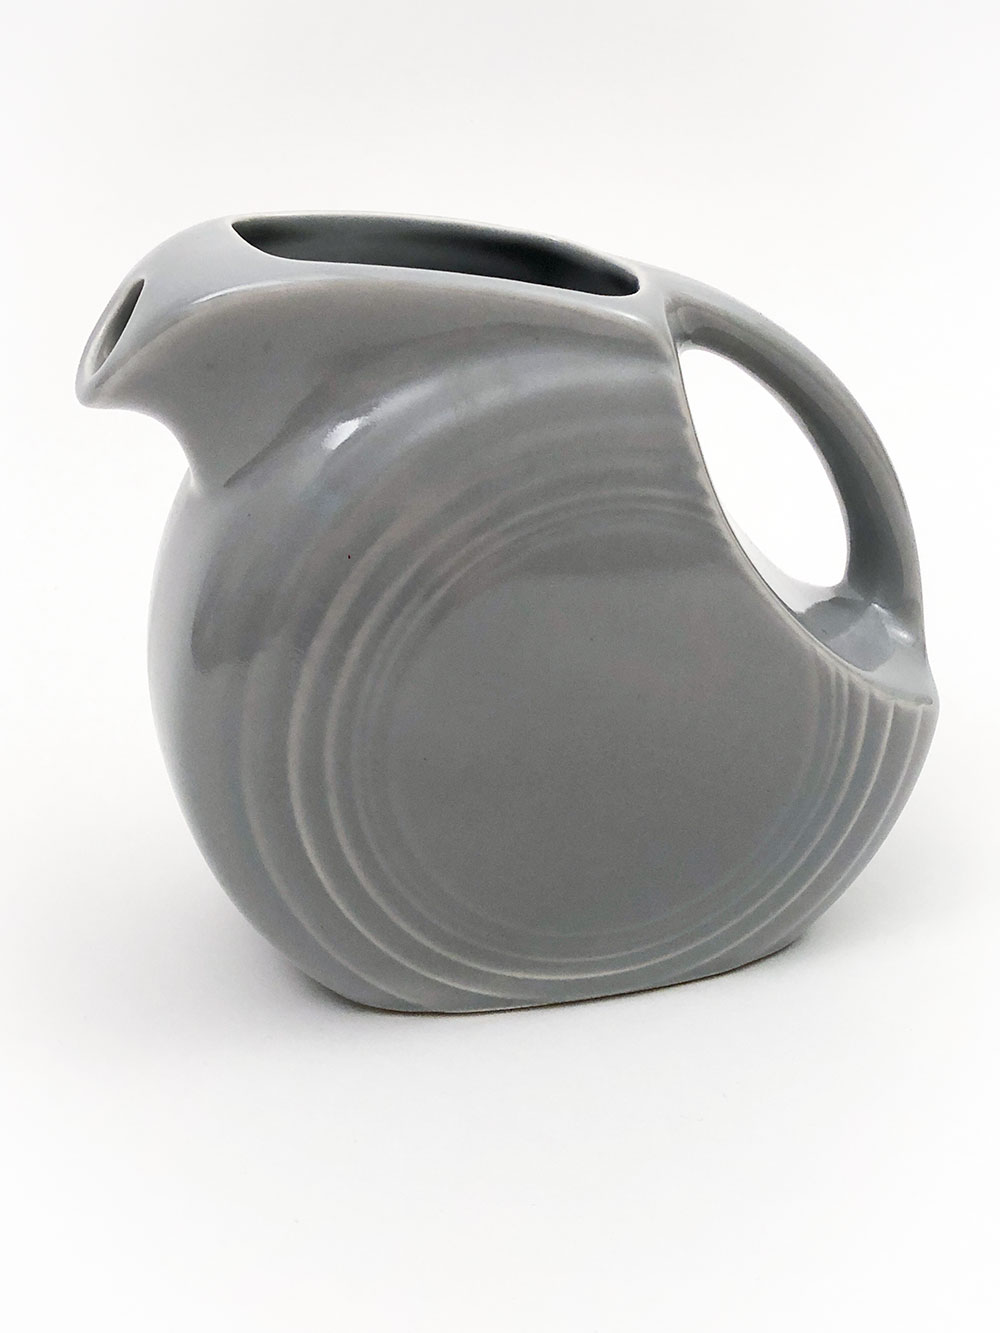 rare original gray vintage fiestaware disc juice pitcher